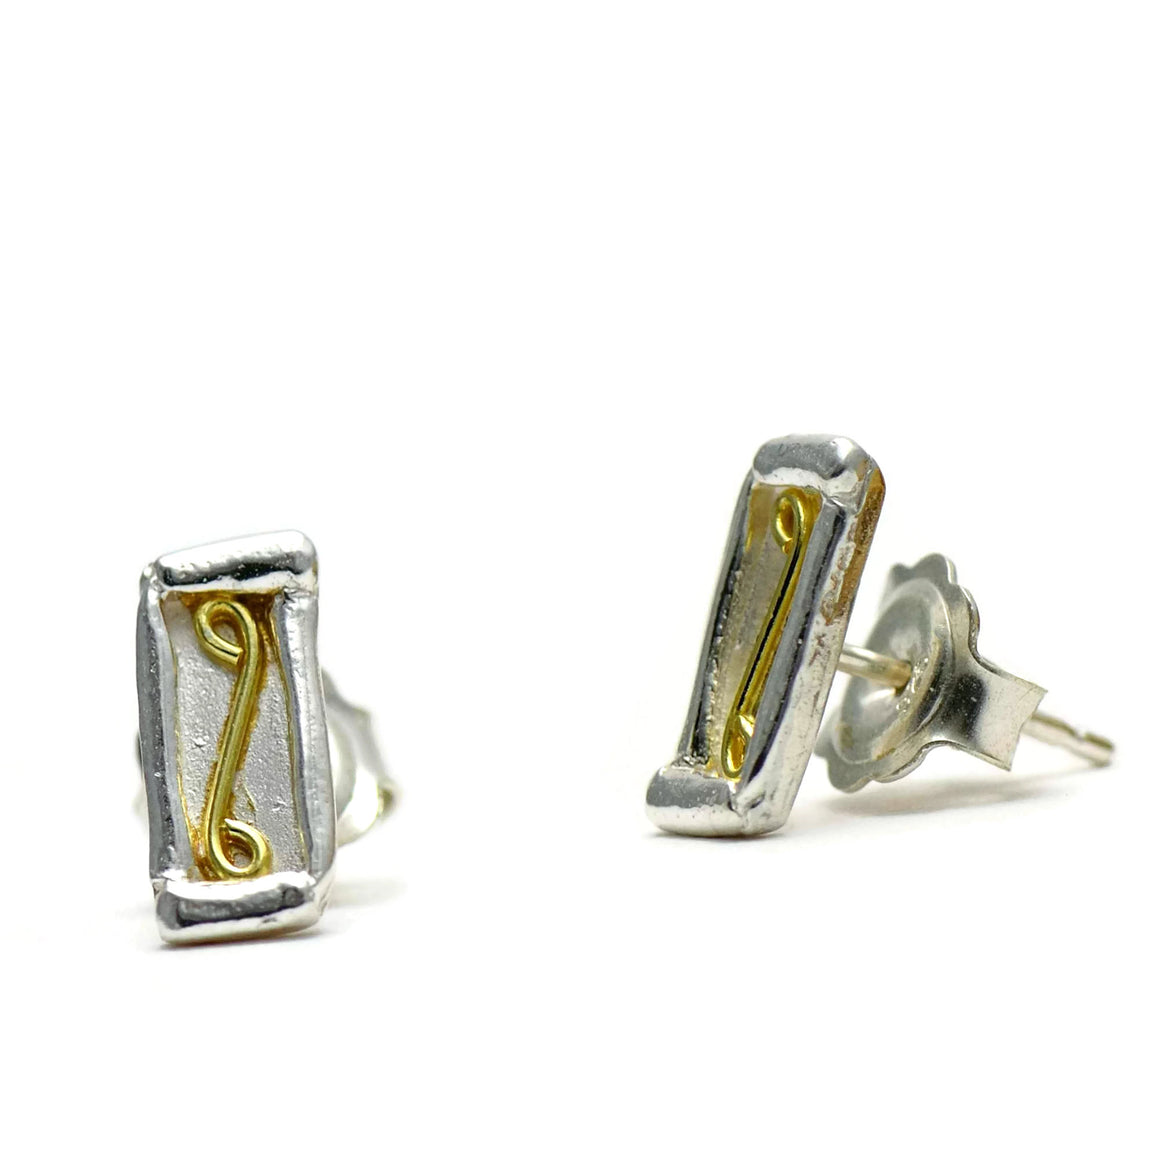 18ct gold and silver petite patterned rectangle stud earrings, geometrical designs